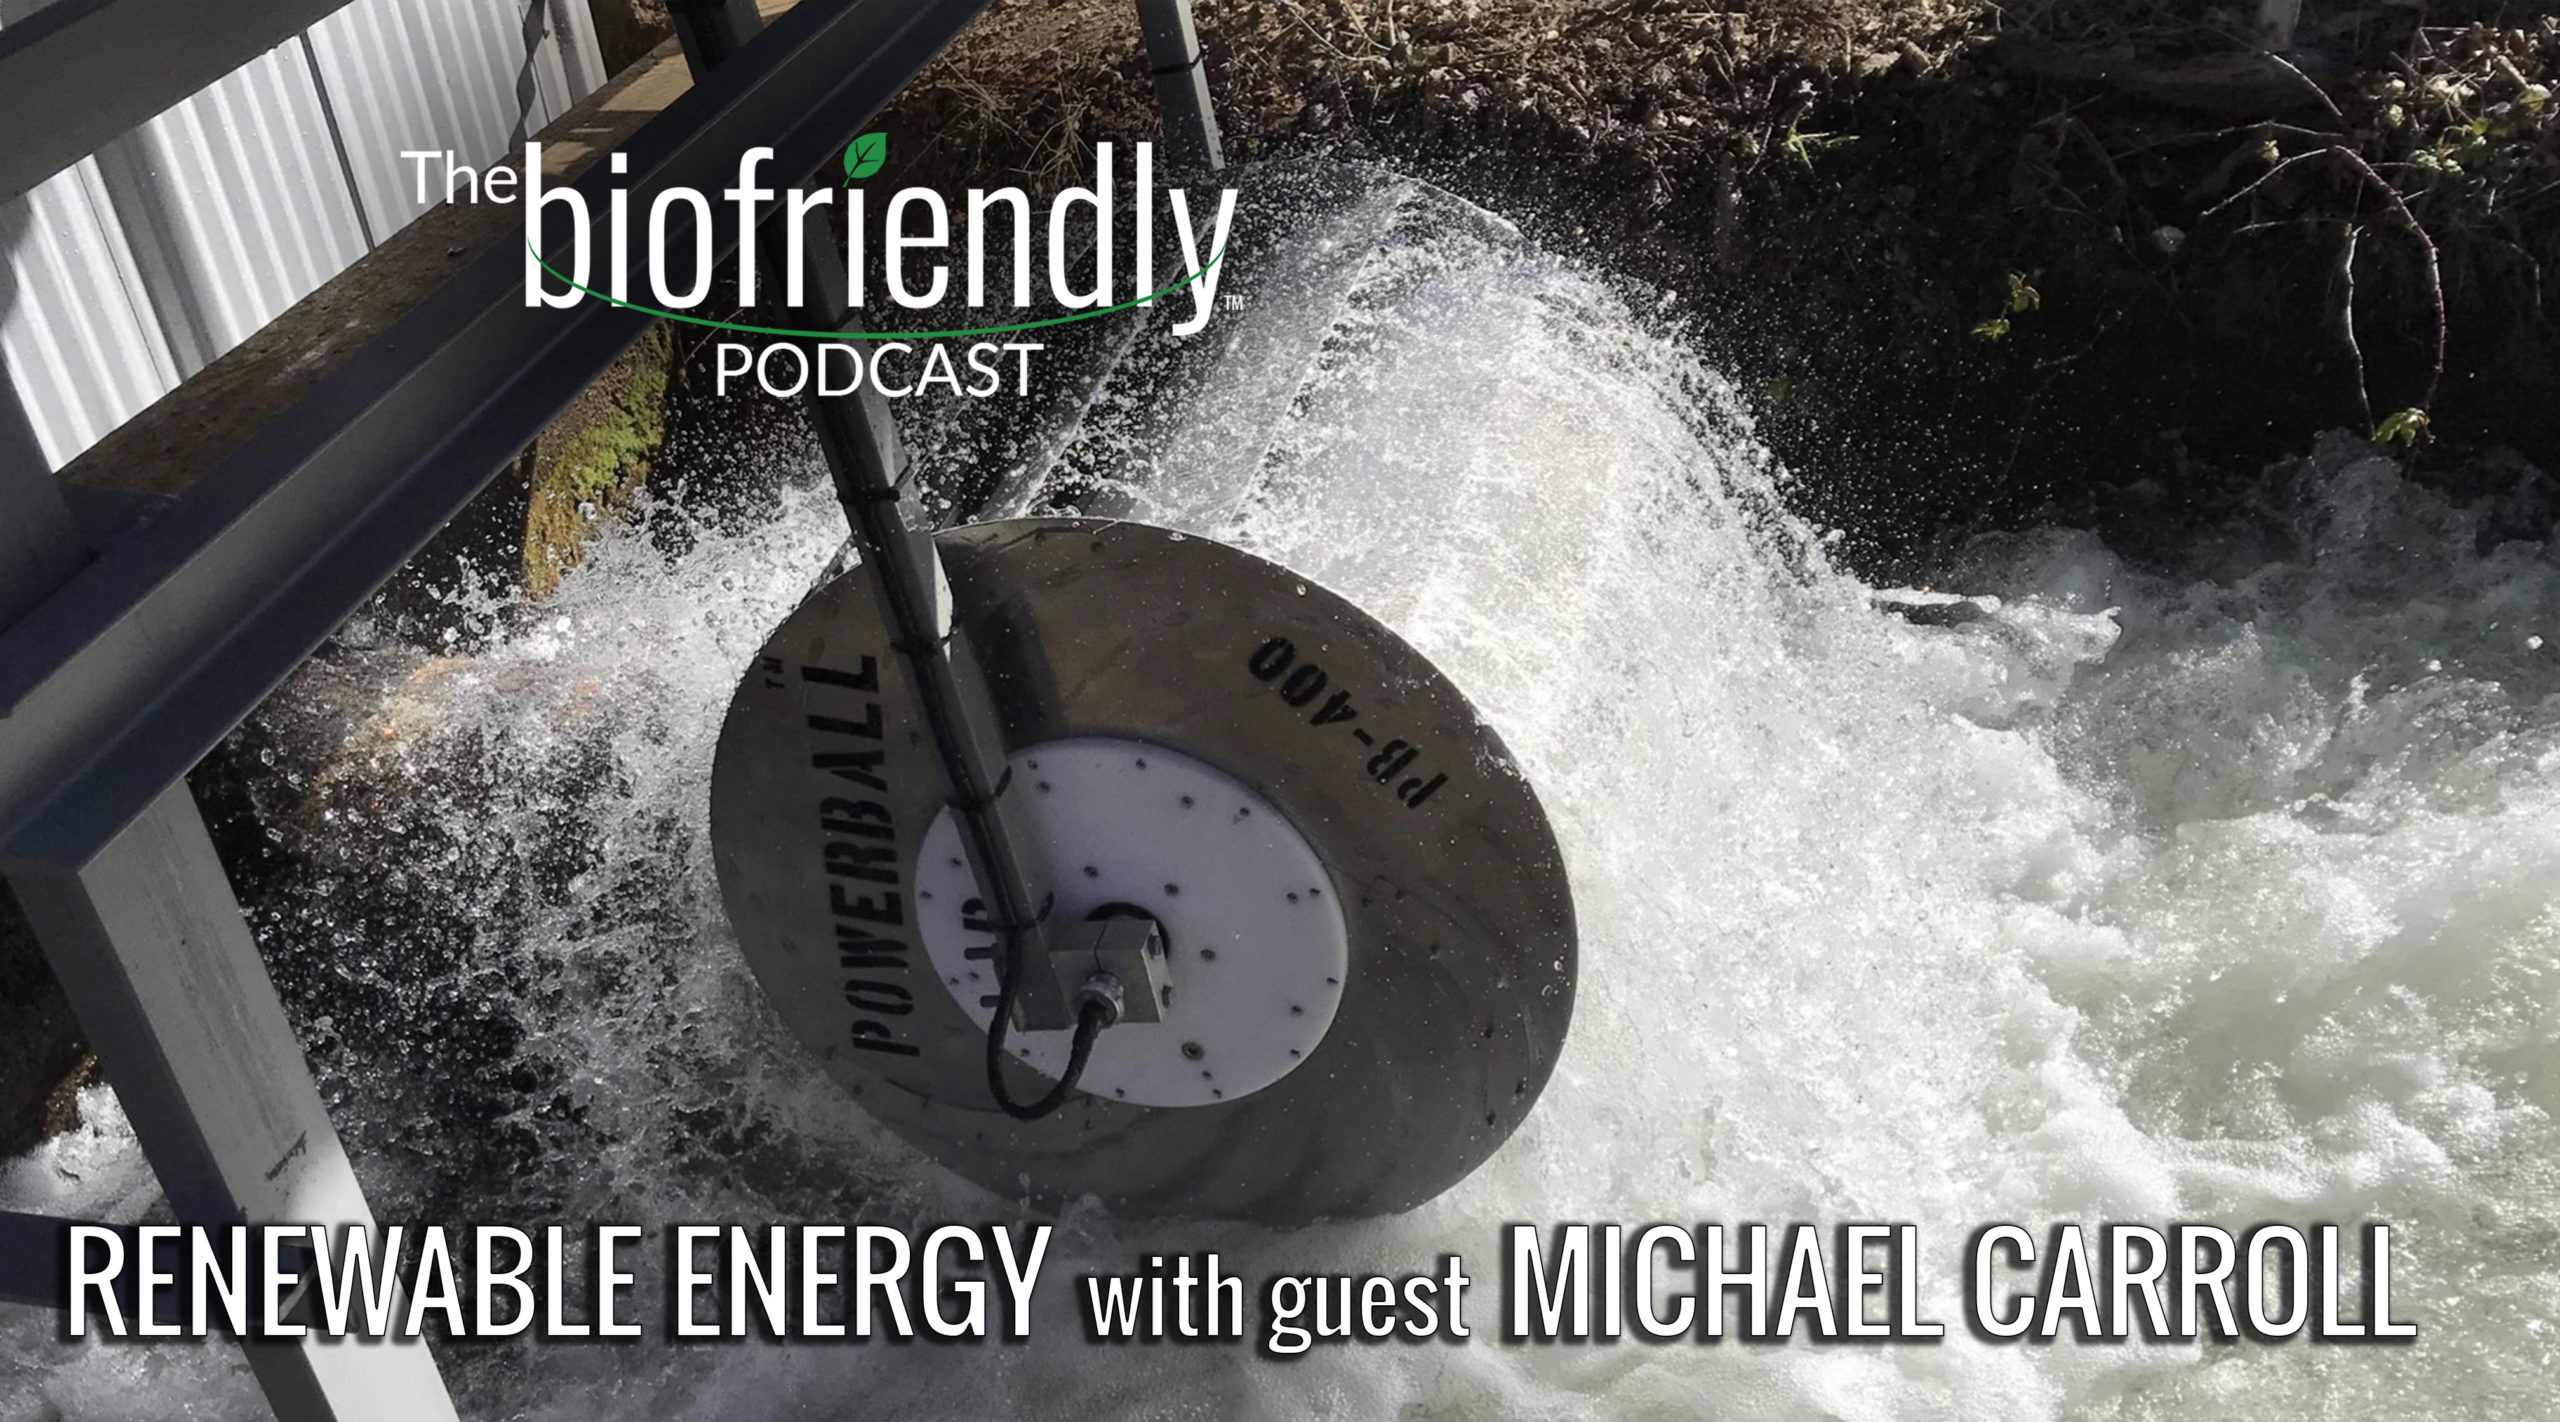 The Biofriendly Podcast - Episode 59 - Renewable Energy with guest Michael Carroll